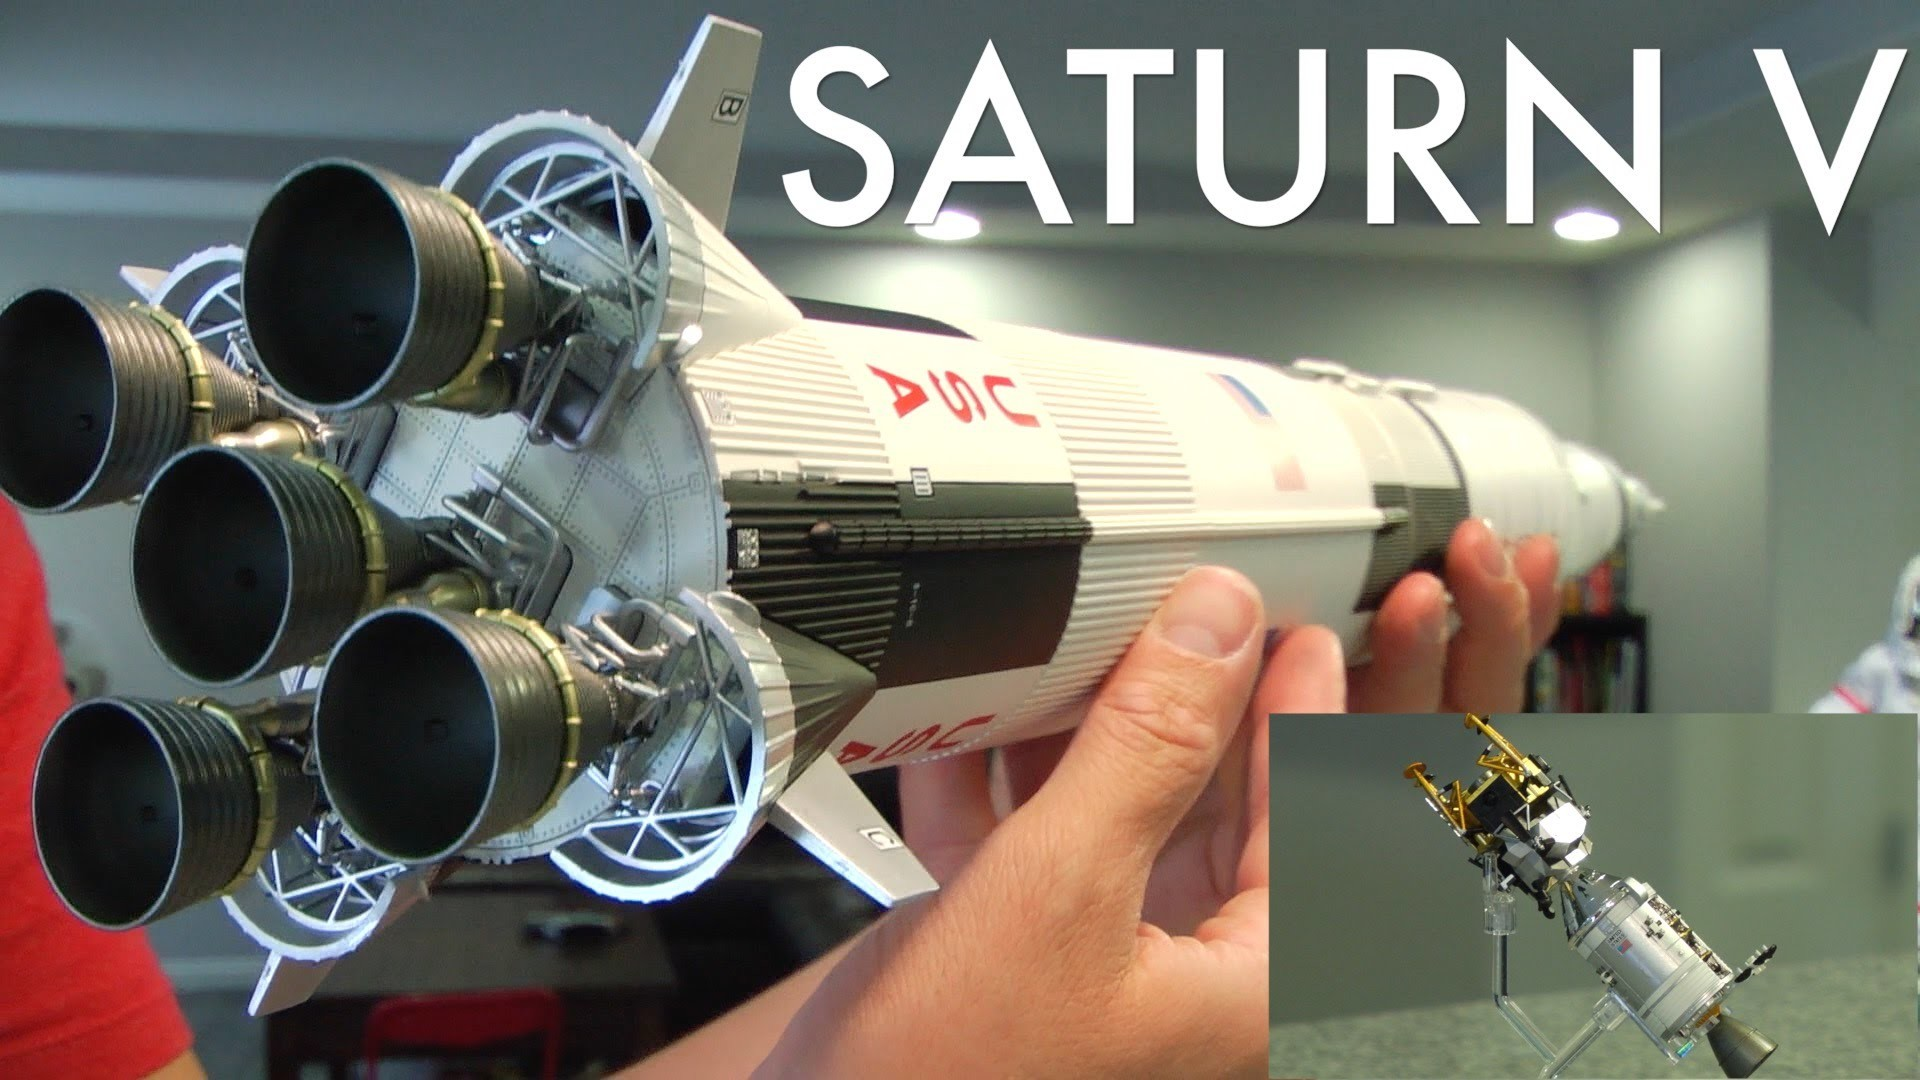 1920x1080 SATURN V ROCKET Apollo 13 edt. Bandai Tamashii Nations 1/144 scale NASA  April. 11, 1970 - YouTube